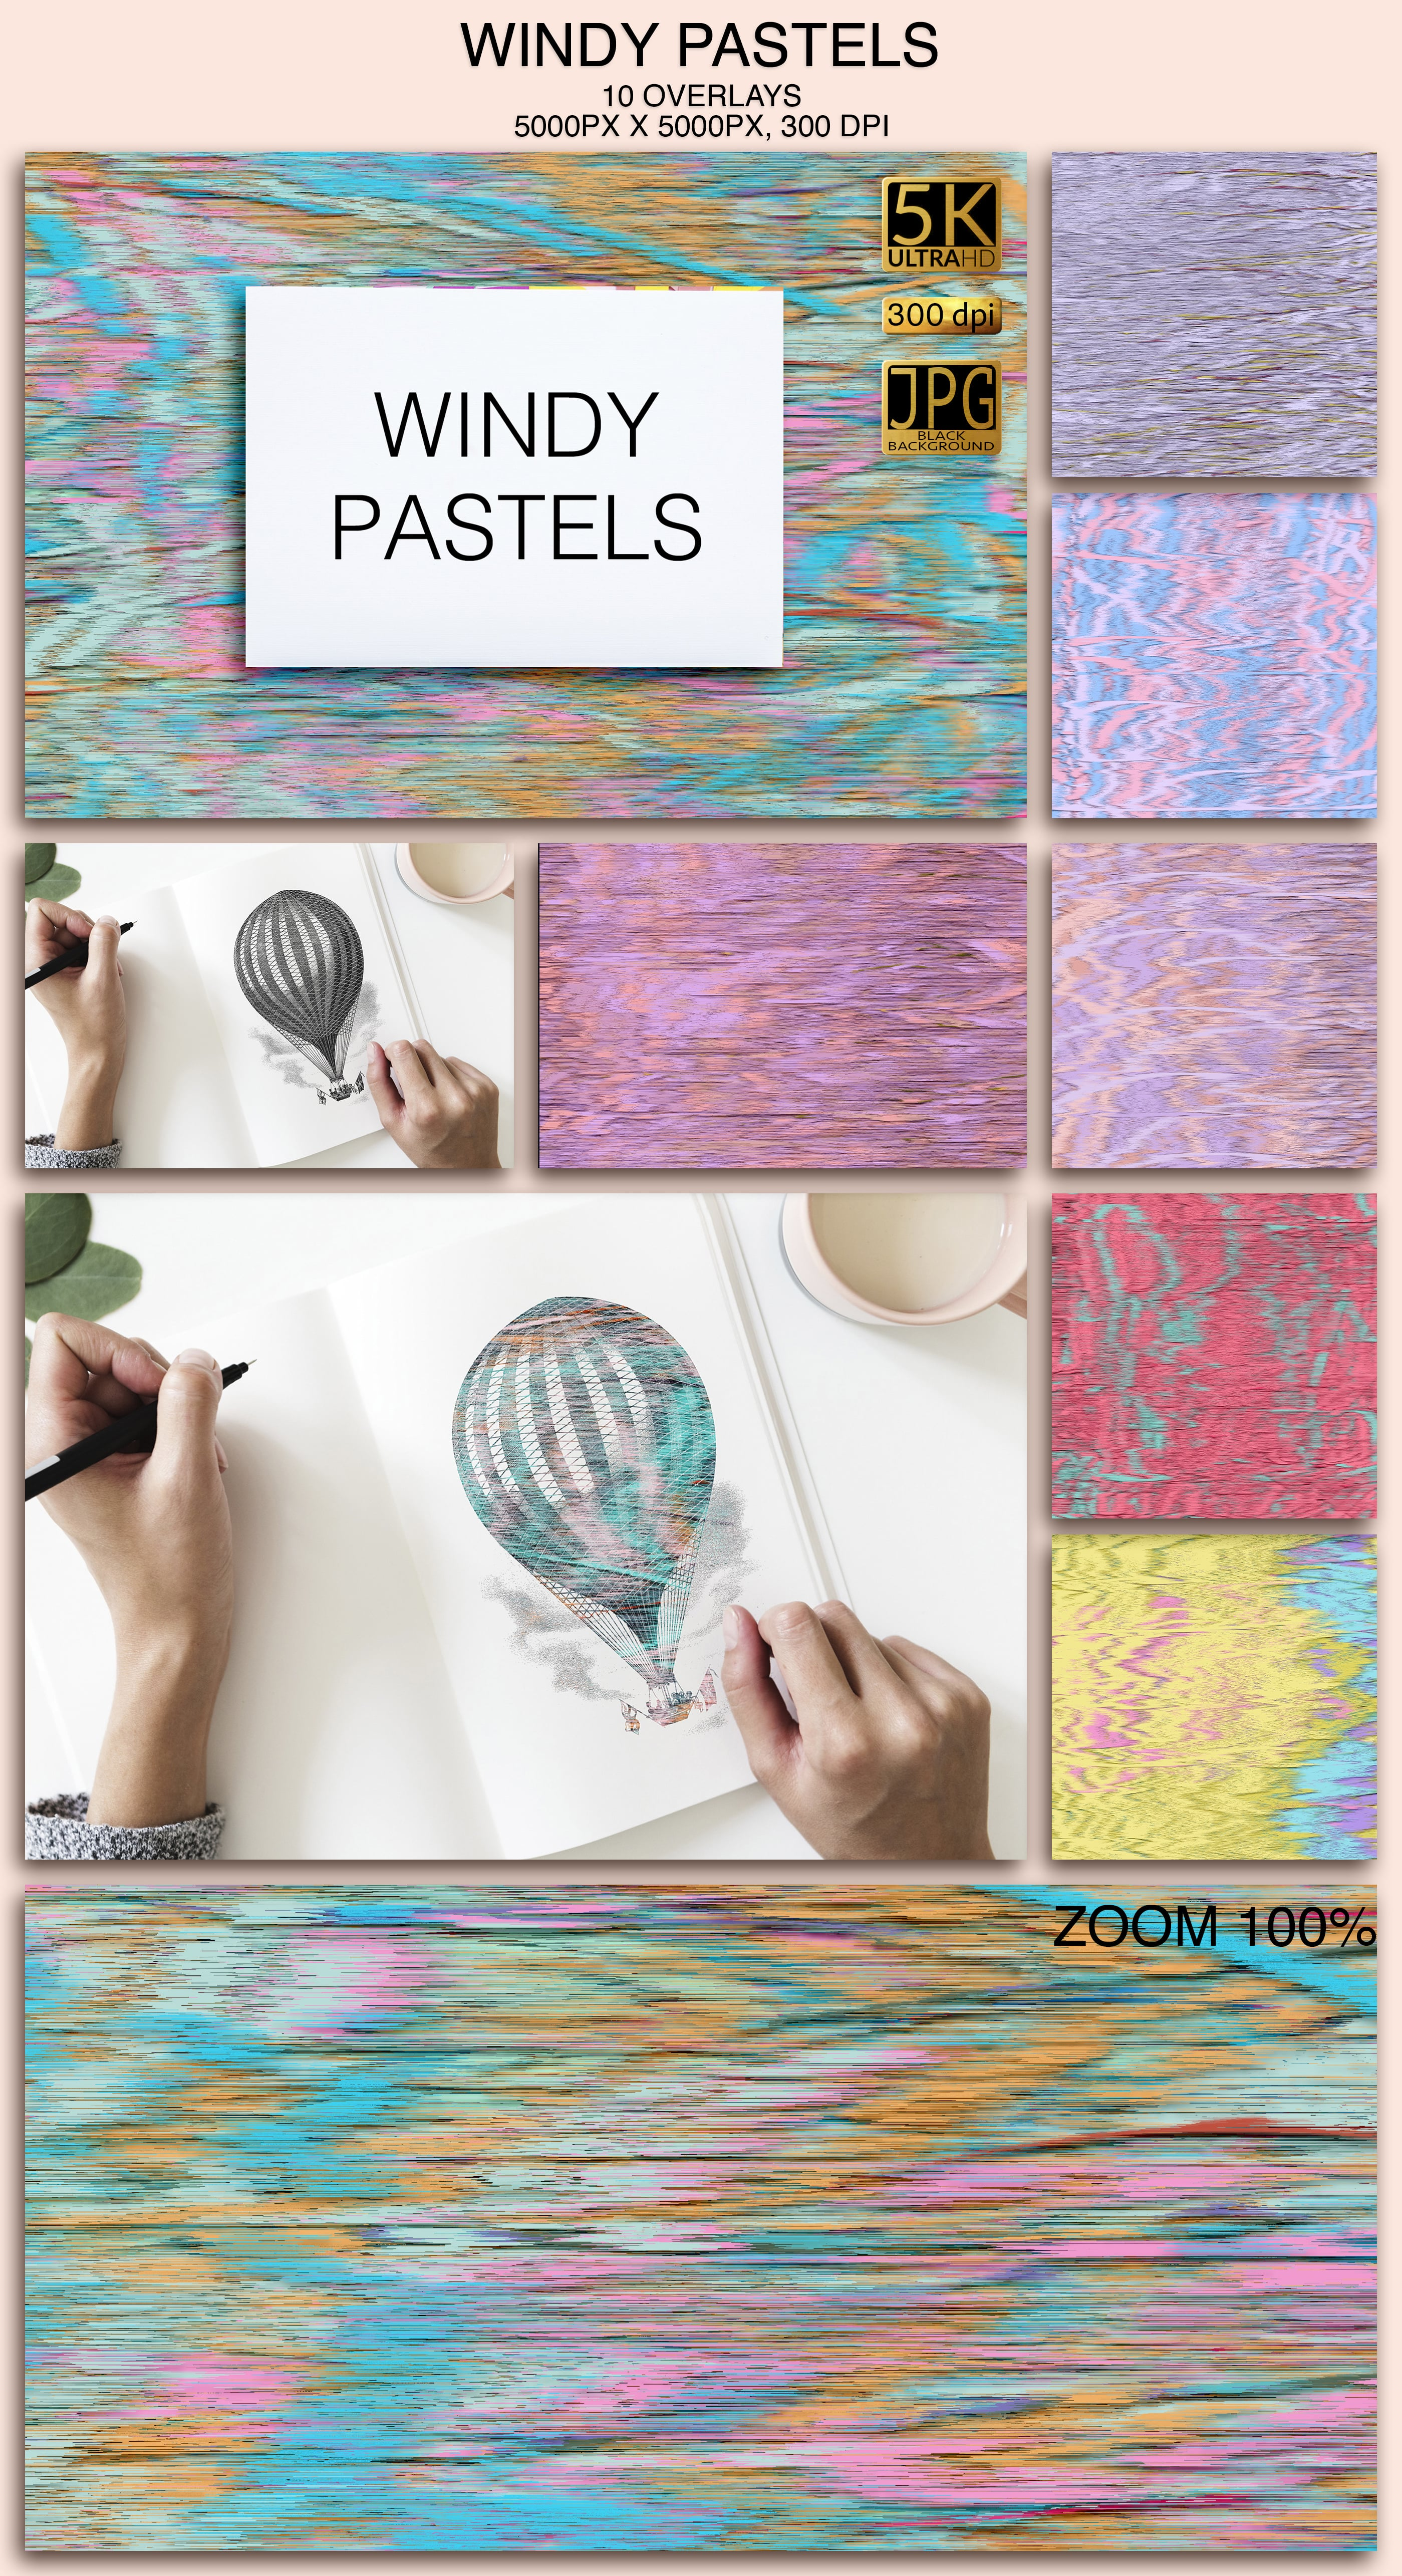 2006 Overlays Photoshop Bundle - Windy Pastels Preview